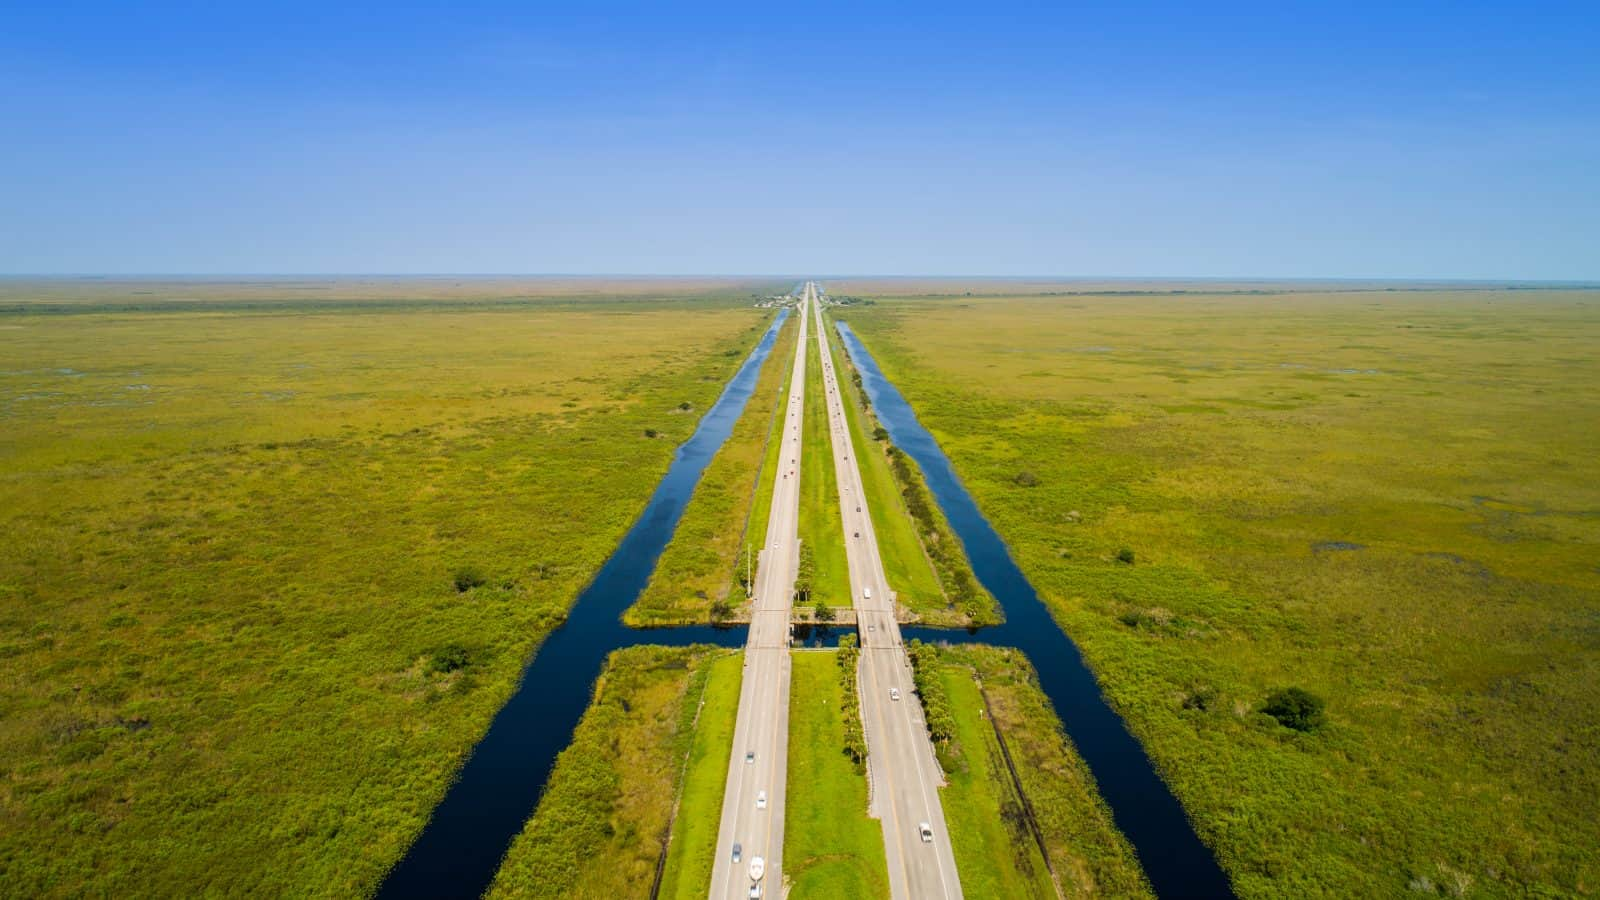 A drone captures the two lane highway of Alligator Alley in Florida.